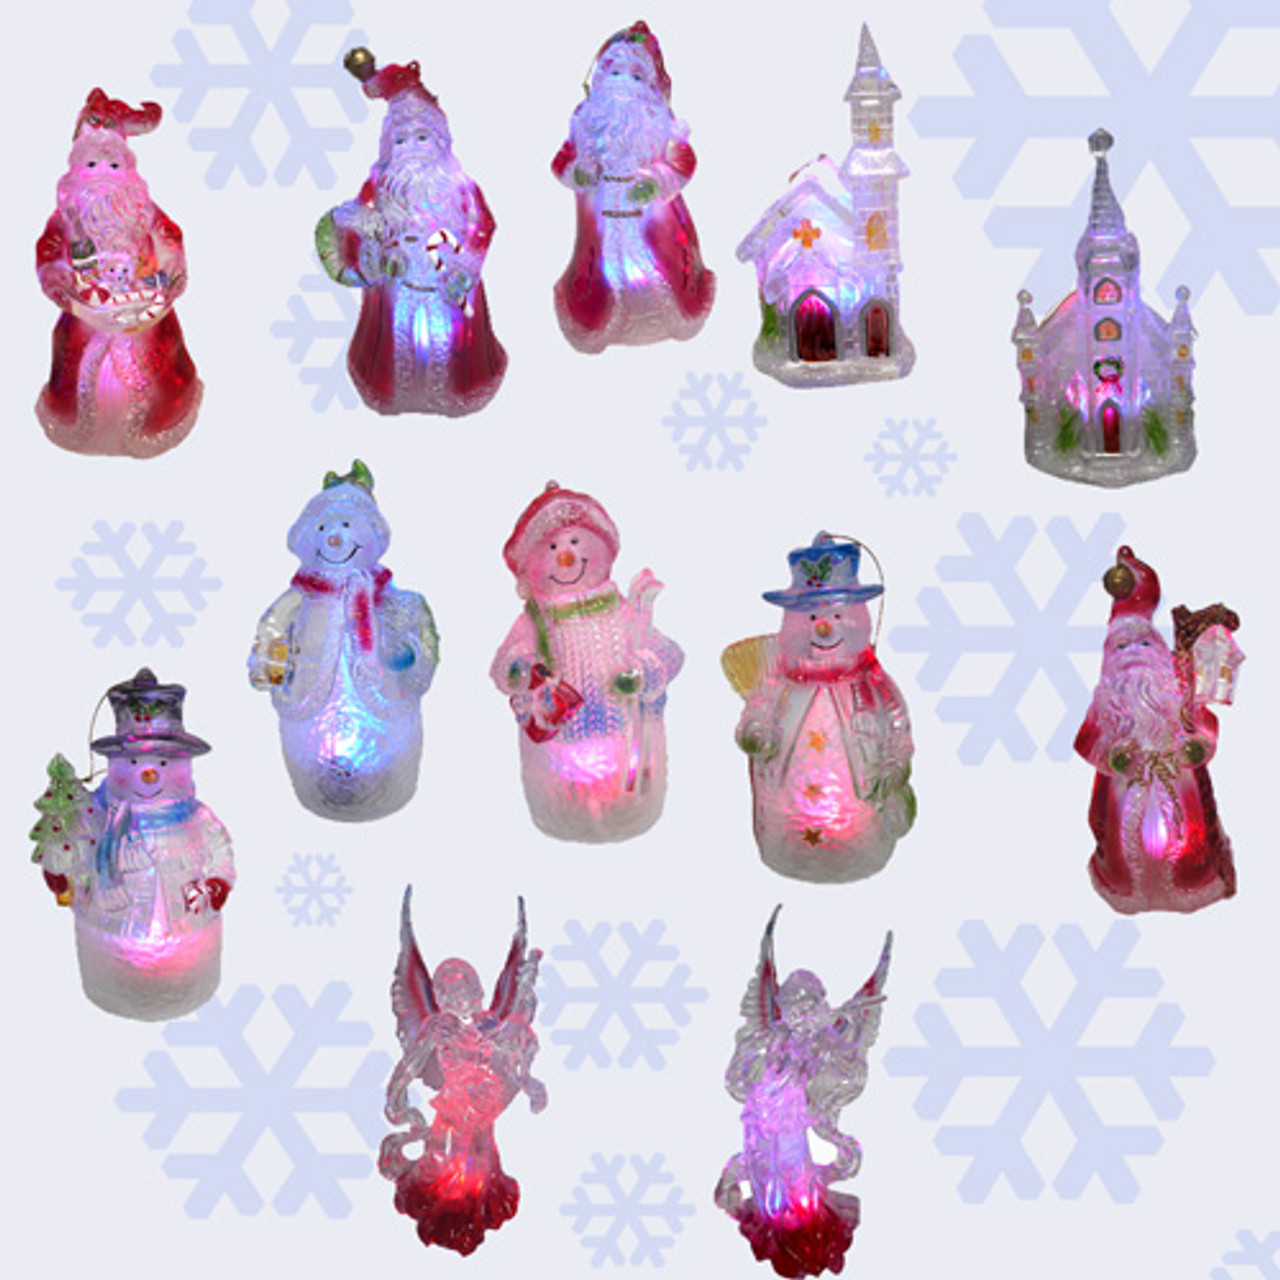 Illuminated Led Ornaments: Set Of 12 Lighted LED Color Changing Christmas Ornaments